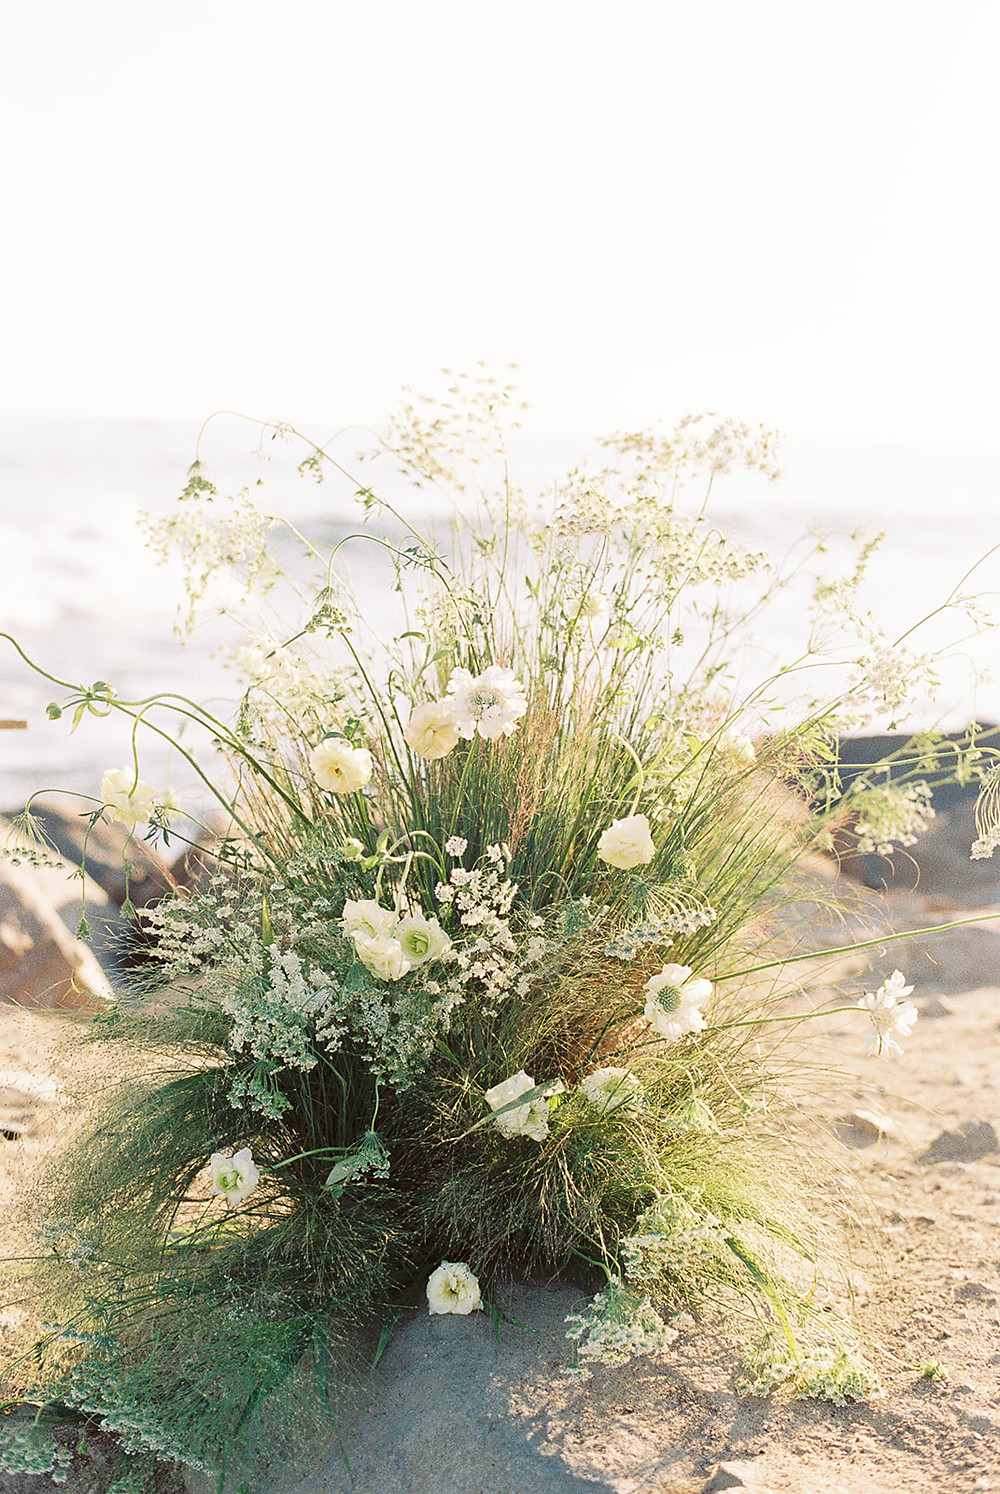 Foam Free growing romantic flower installation for beach elopement in Dana Point, California by Southern California Wedding florist Le Champagne Projects